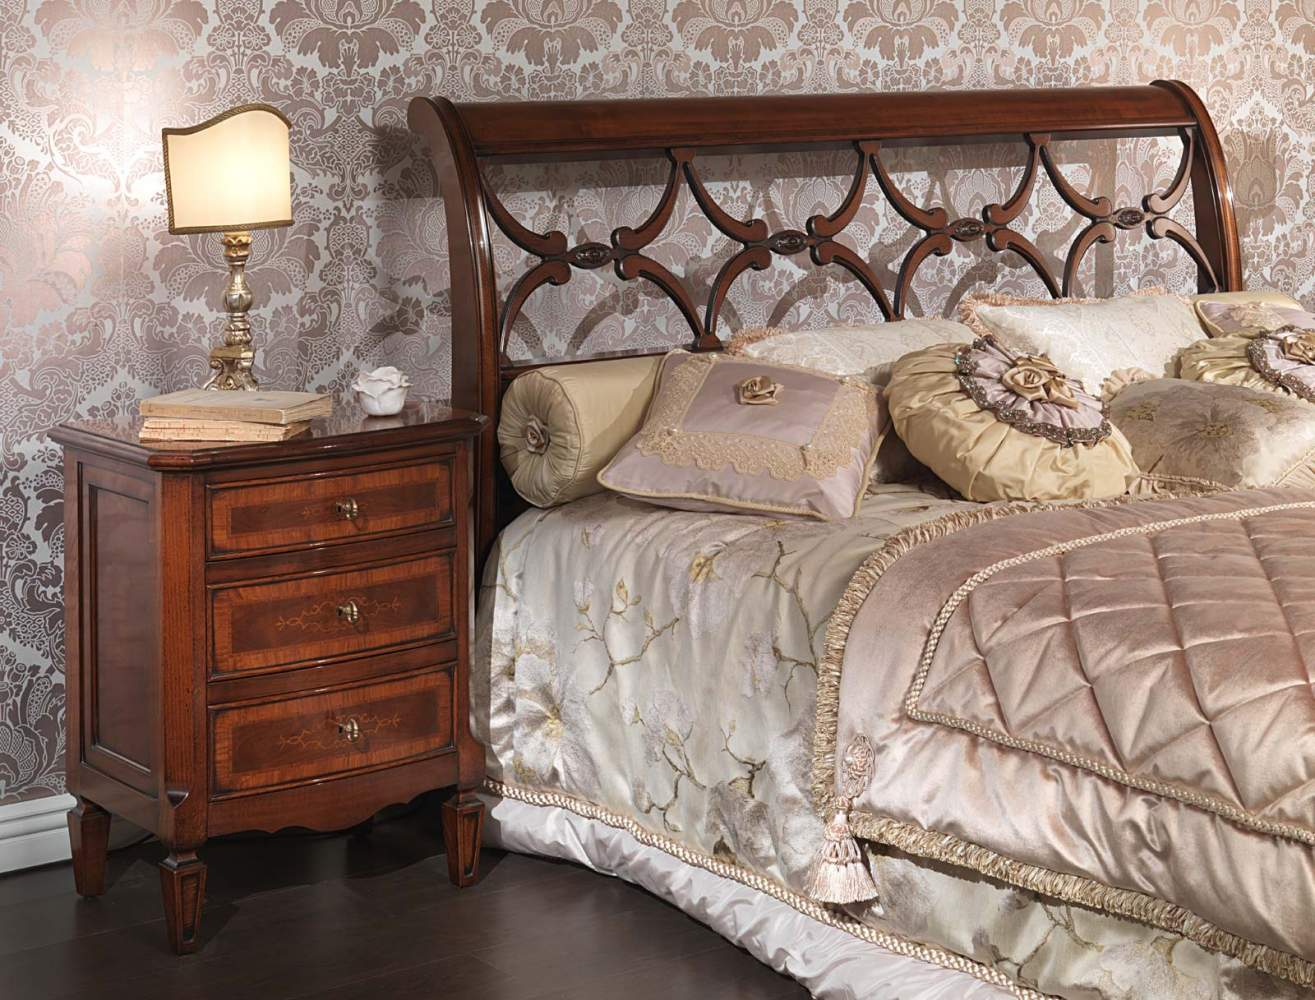 Italian bed and night table of the 18th century